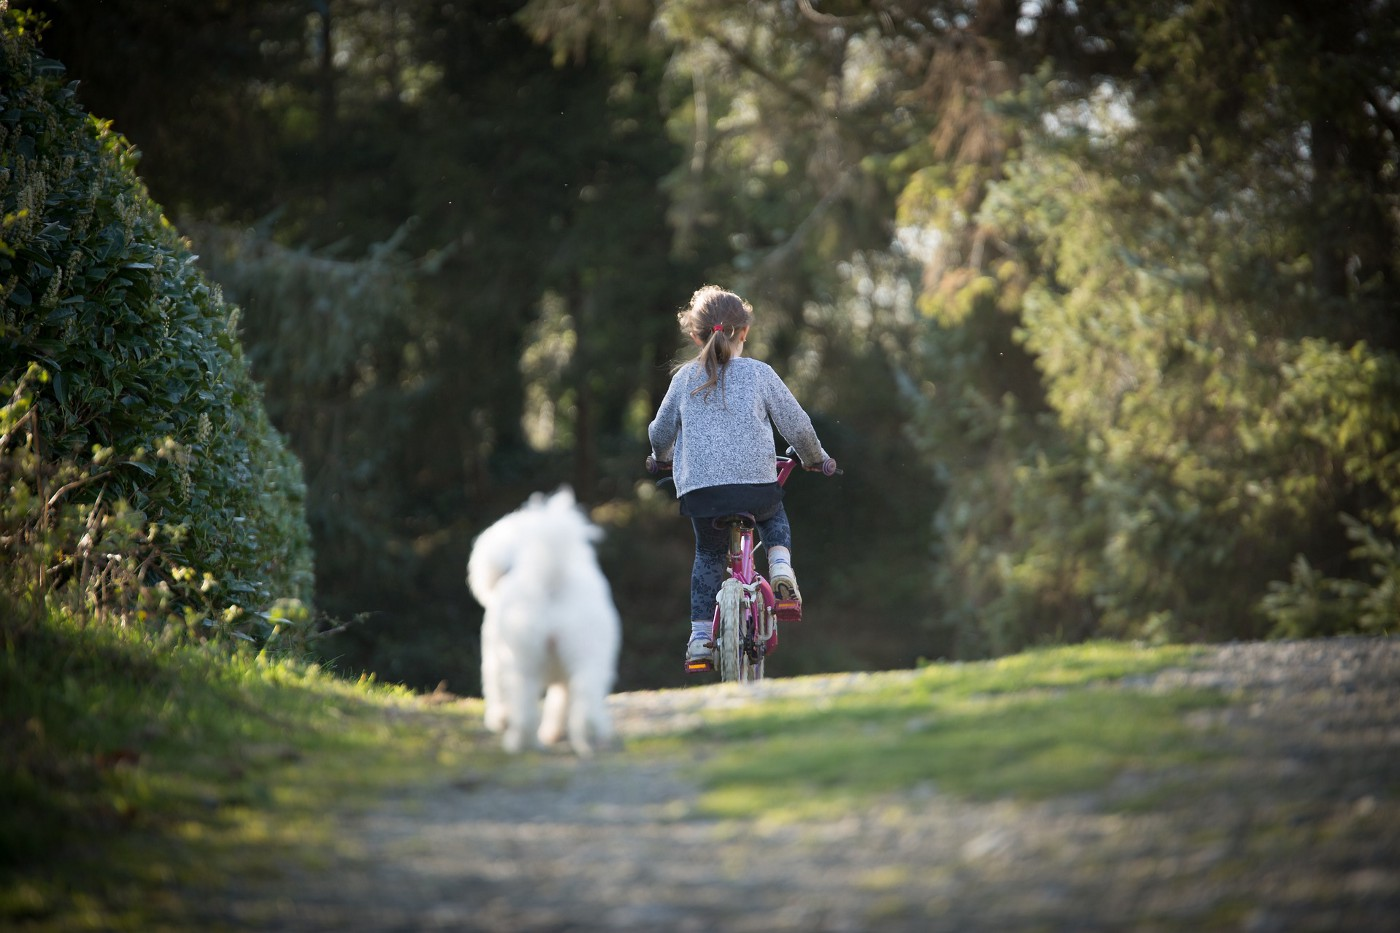 A girl rides a bicycle in a natural road followed by her little white dog